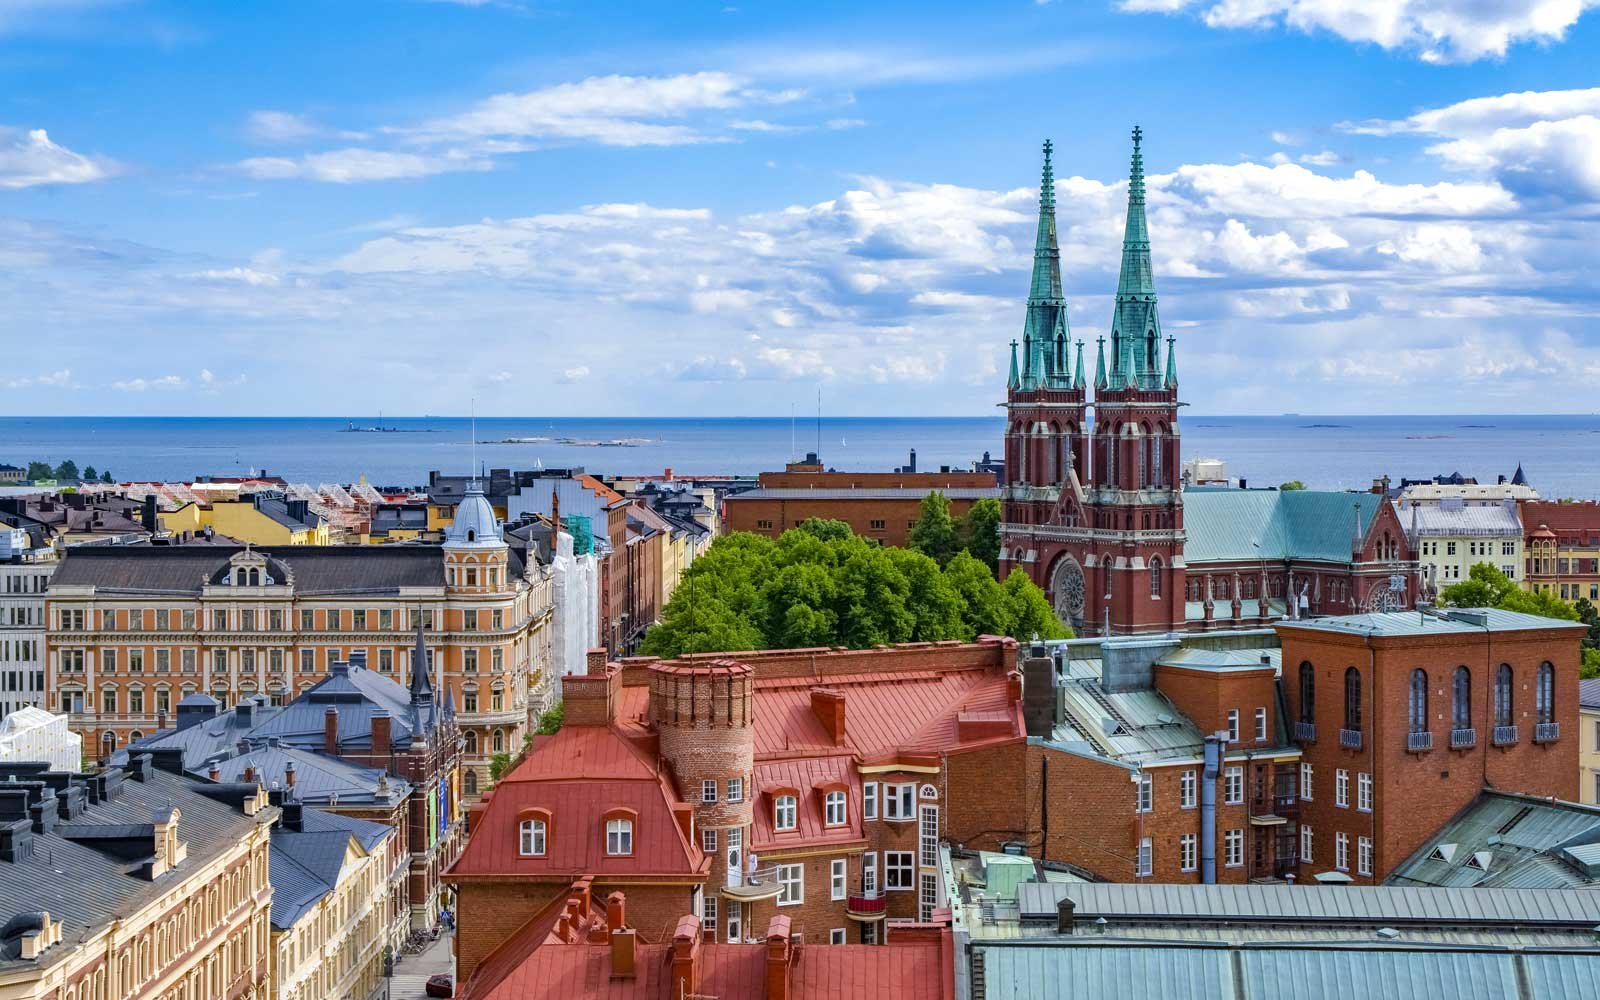 Cityscape of Helsinki, capital of Finland